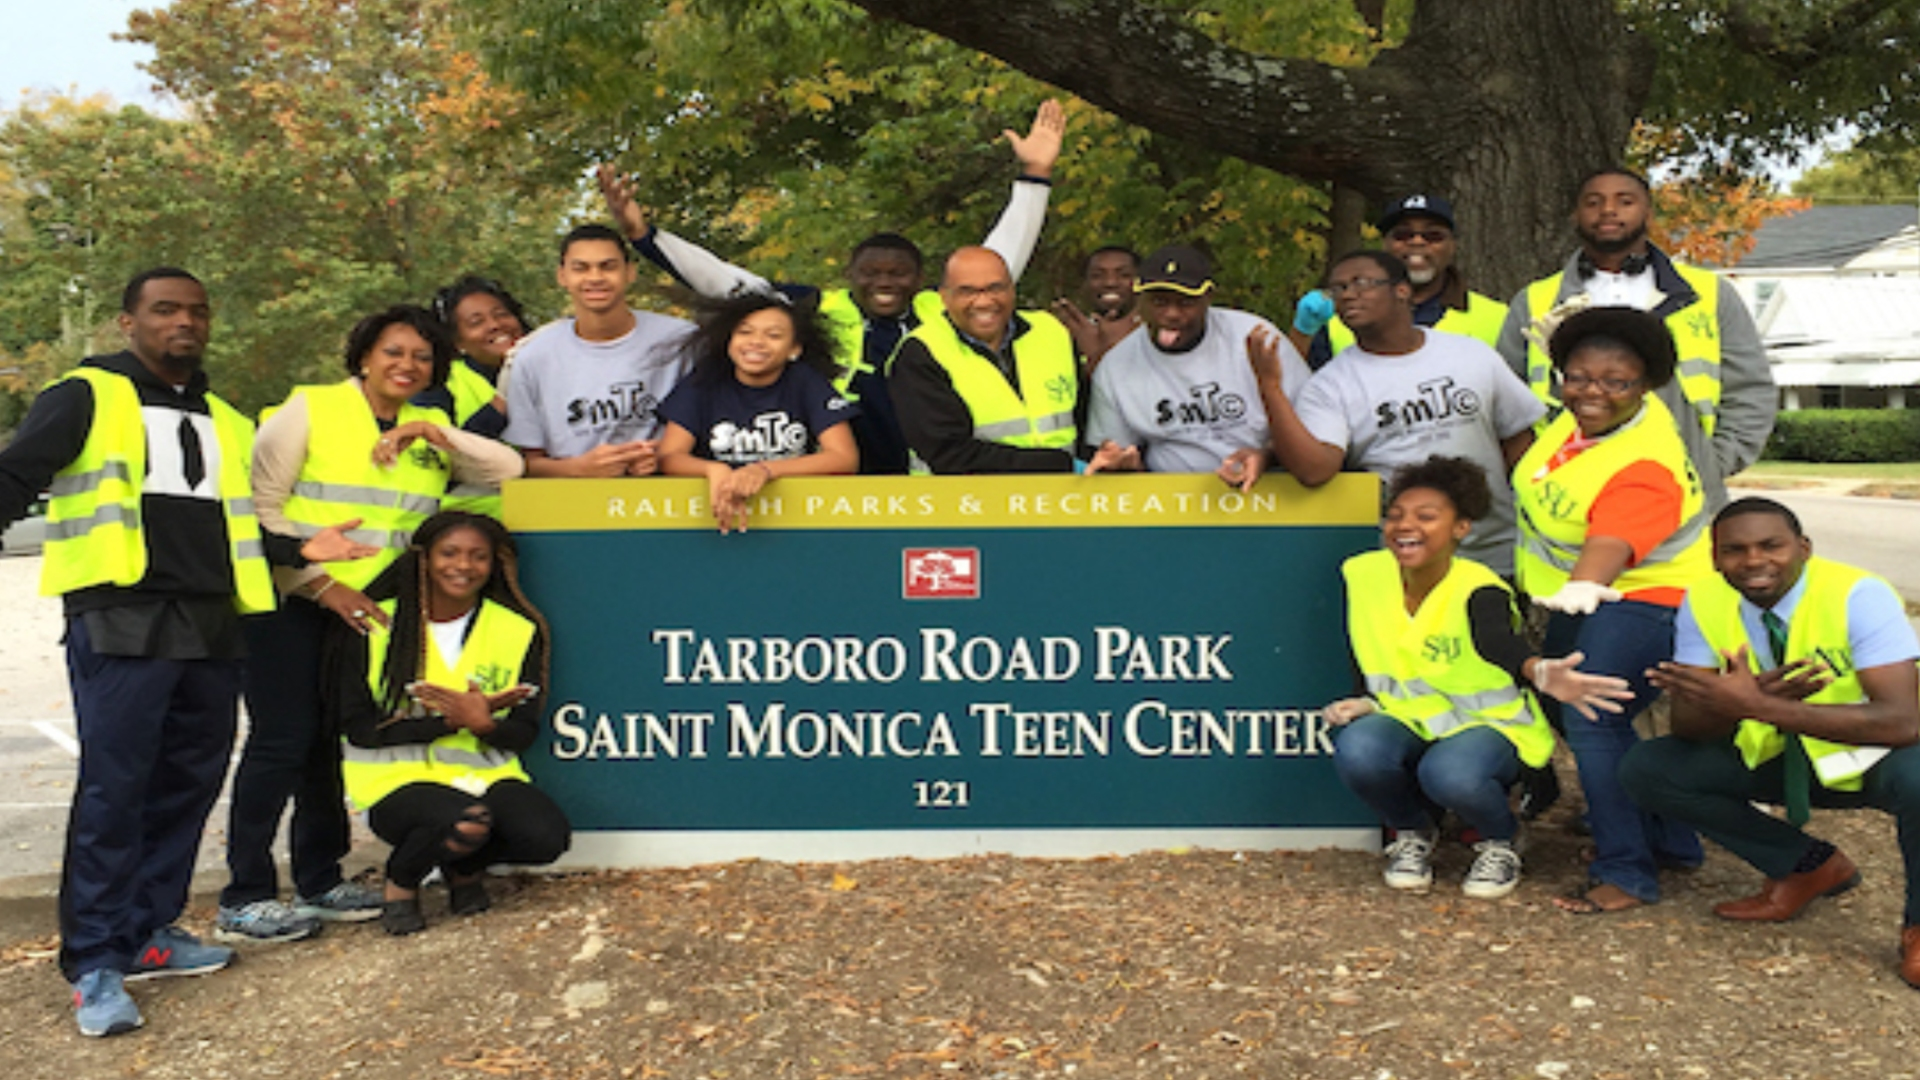 A group of park volunteers posing in front of the Tarboro Road Park sign